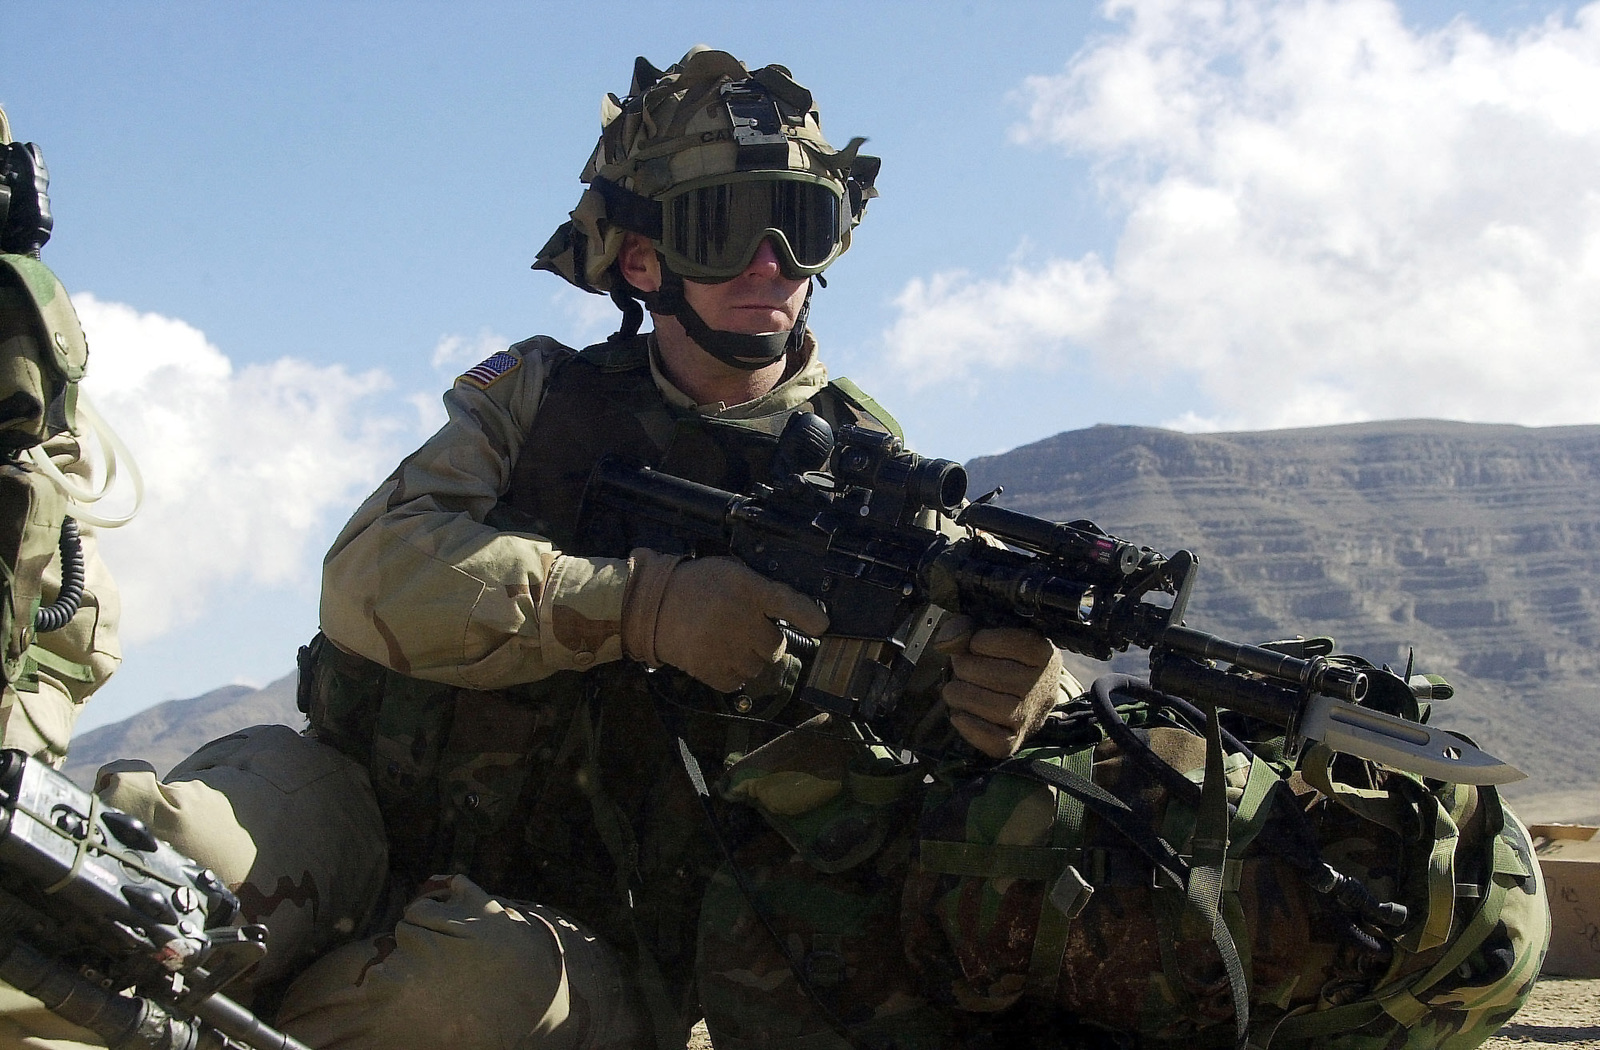 """Armed with 5.56mm M4 Carbines, First Sergeant (1SG) Jimmy Carabello of """"A"""" Company, 2nd Battalion, 504th Parachute Infantry Regiment (PIR), stands alert at the Kandahar Army Airfield, during a search for Taliban fighters in support of ENDURING FREEDOM"""